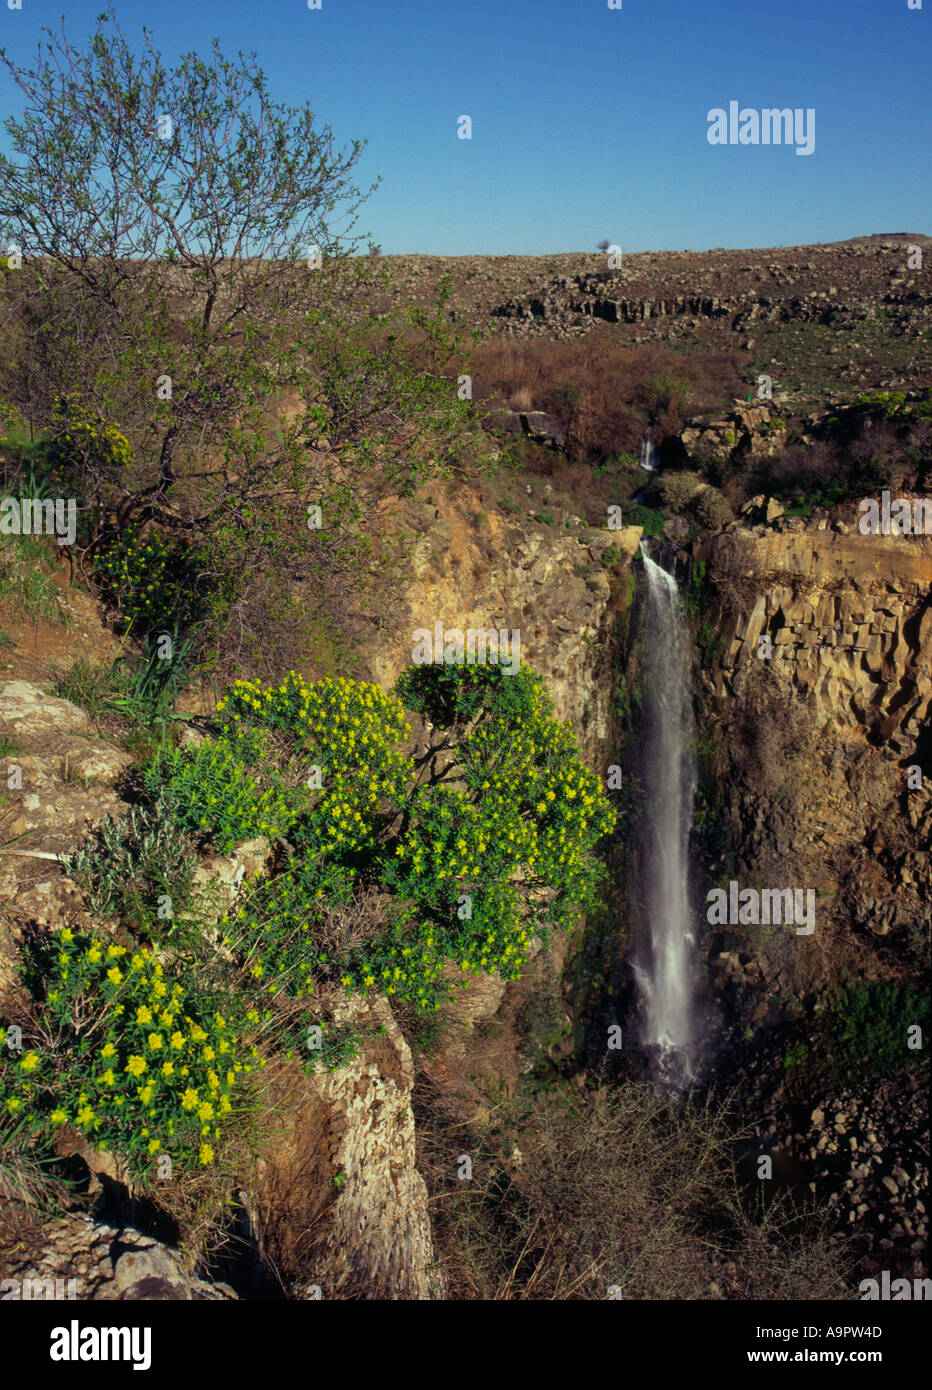 Israel Golan Heights Gamla nature reserve The waterfall view withflowers and tree in frgd Stock Photo